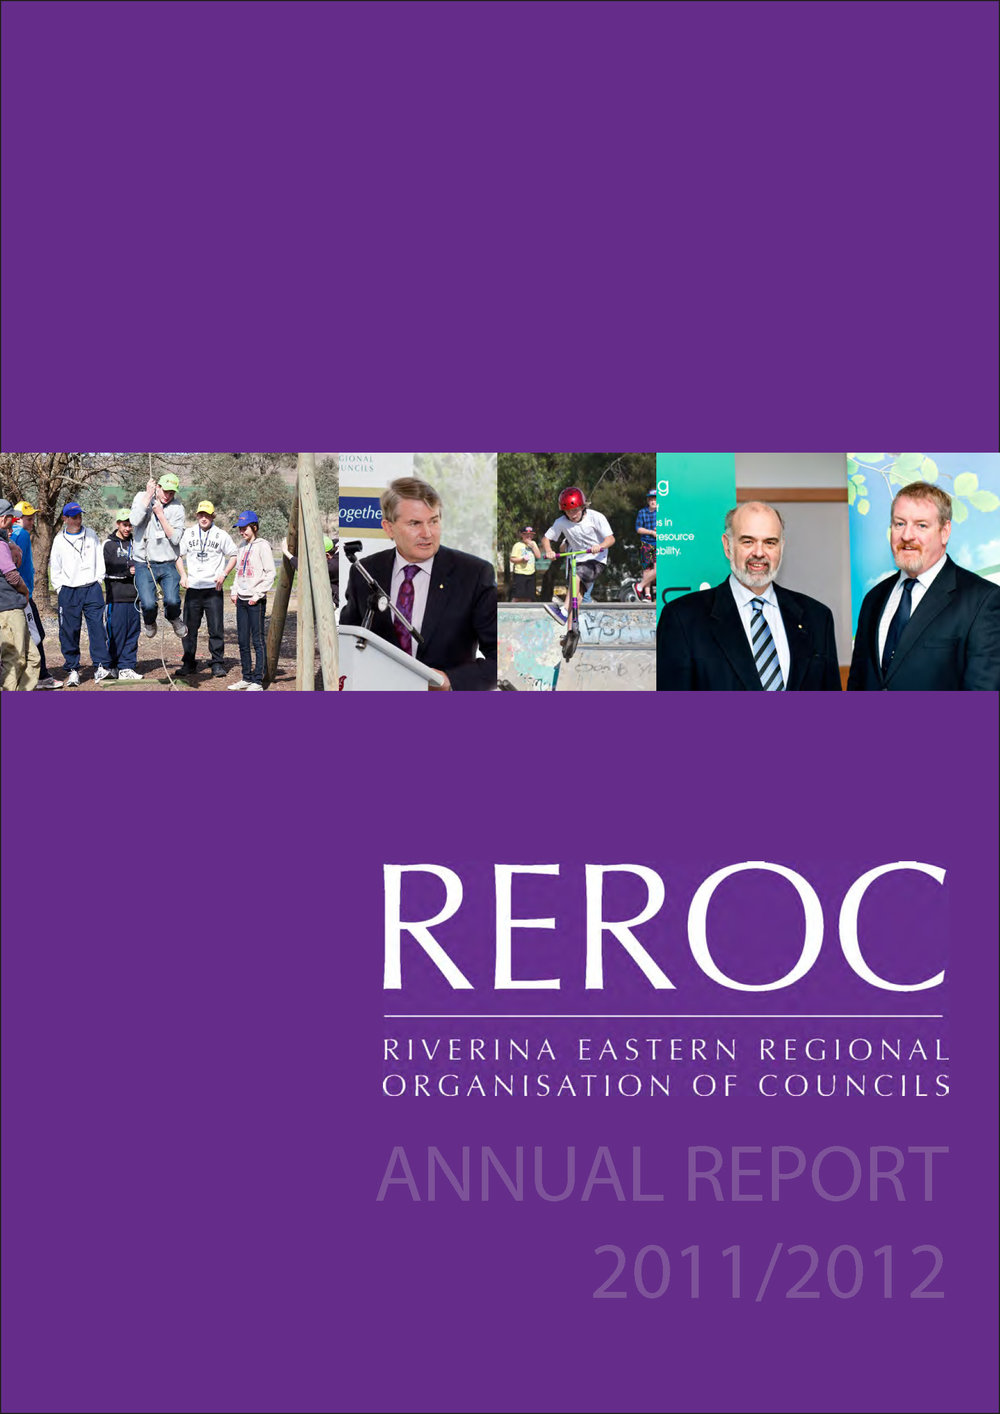 REROC+2012+Annual+Report_web_0_Page_01.jpg